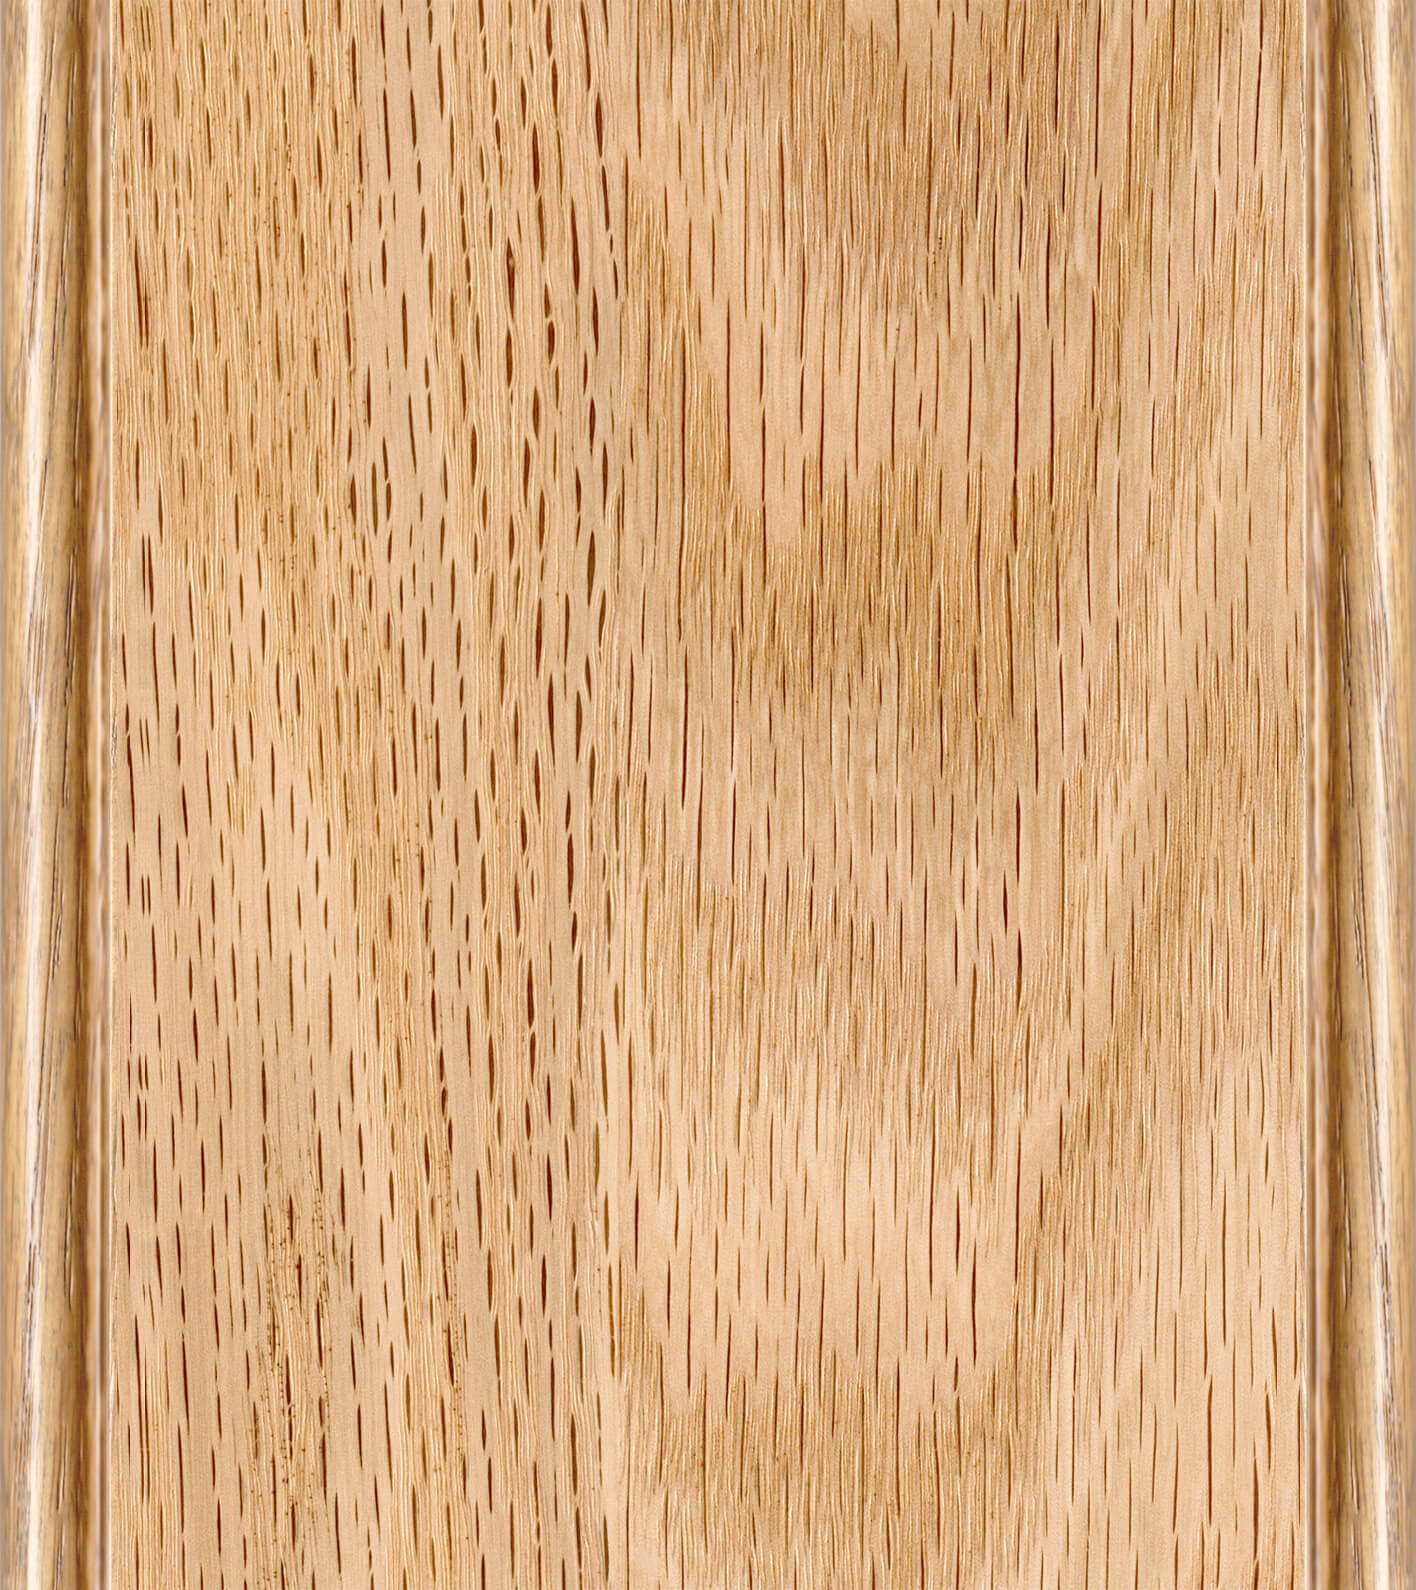 Natural Finish on Red Oak